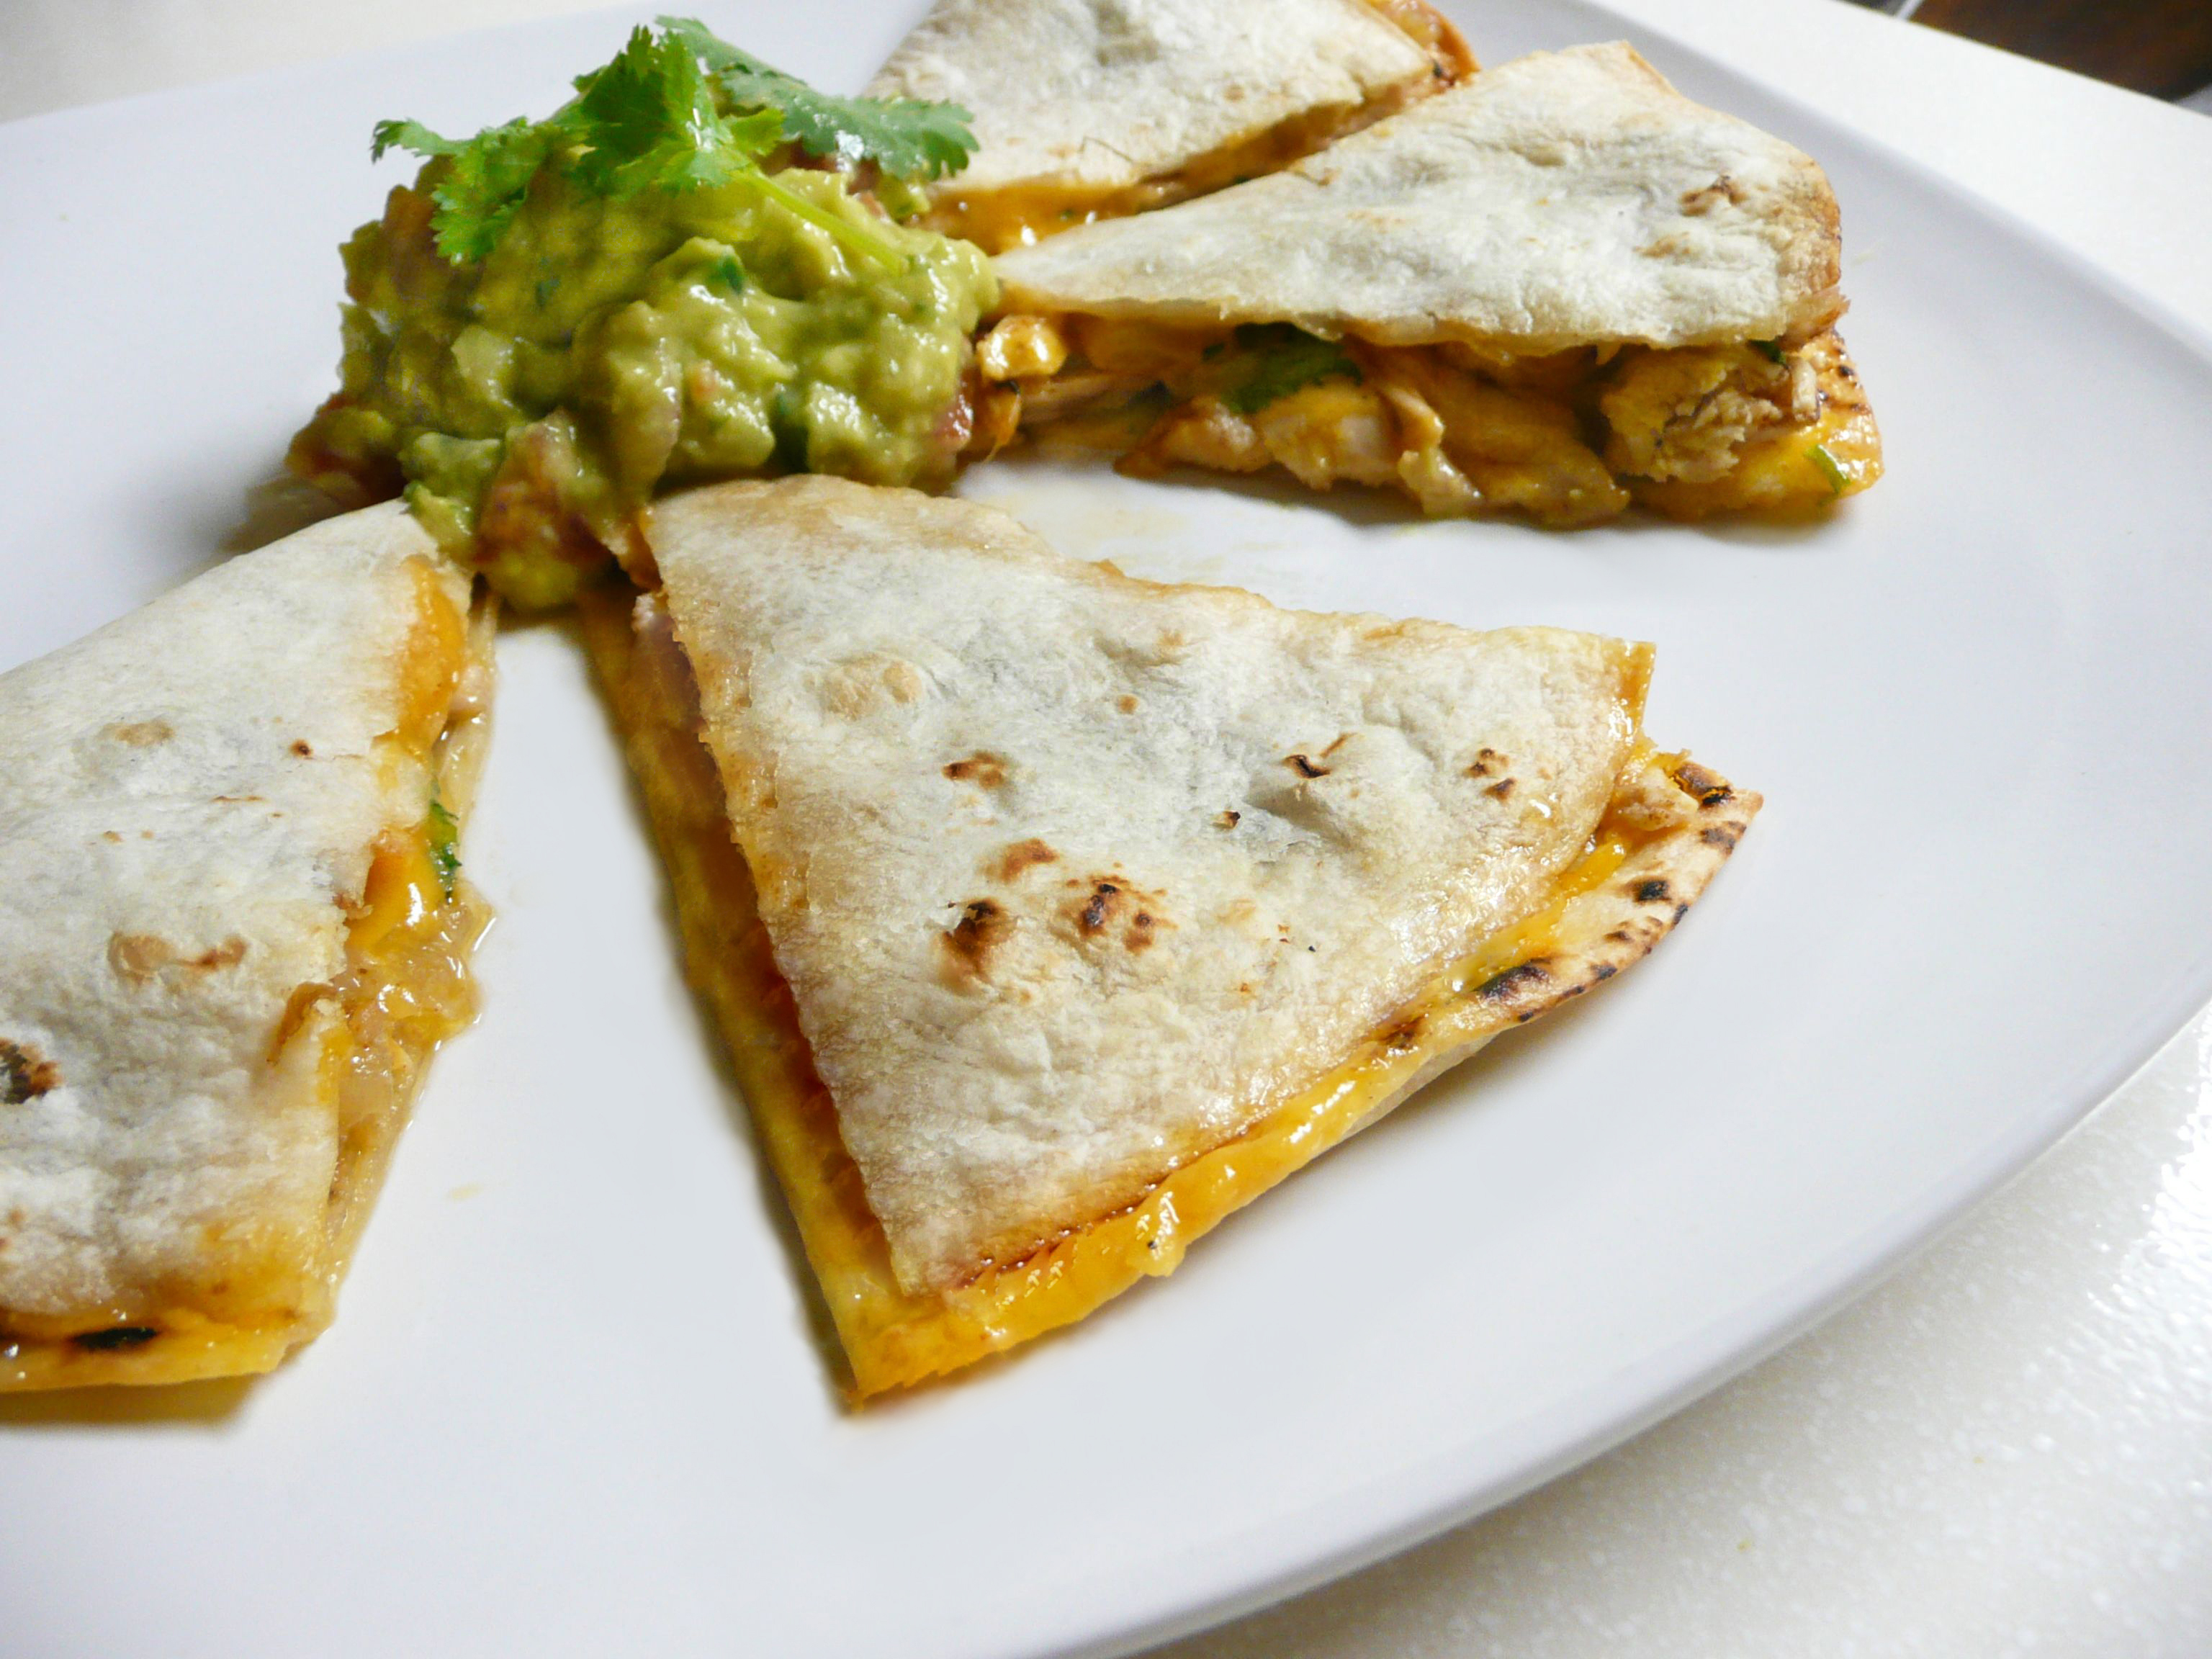 Chicken Quesadilla with Caramelized Onions - The Partial Ingredients